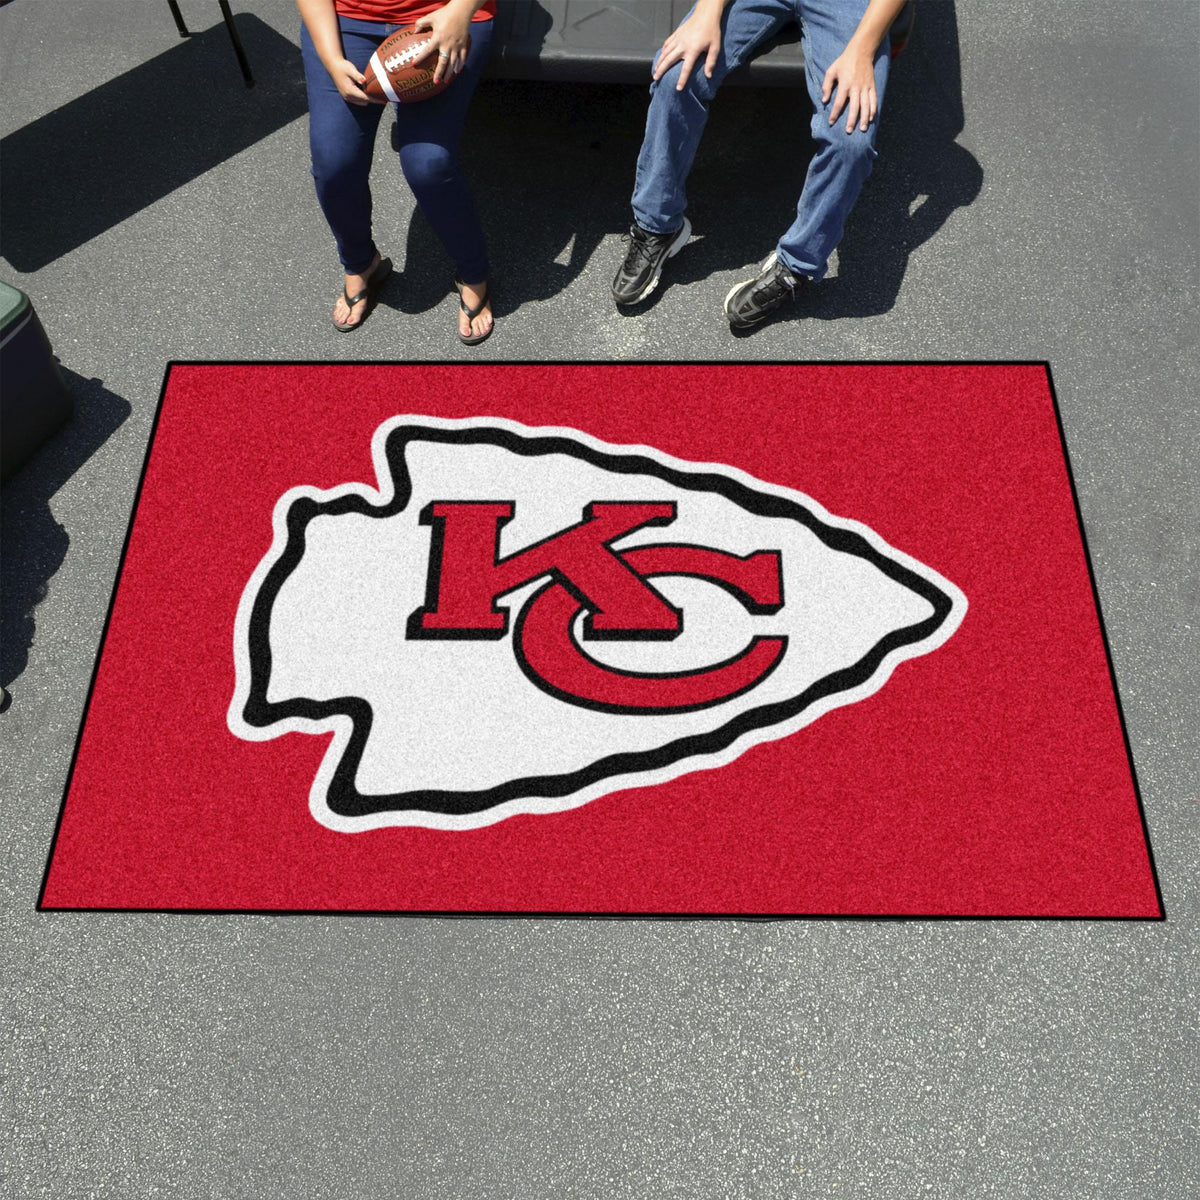 "NFL - Ulti-Mat, 59.5"" x 94.5"" NFL Mats, Rectangular Mats, Ulti-Mat, NFL, Home Fan Mats Kansas City Chiefs 2"